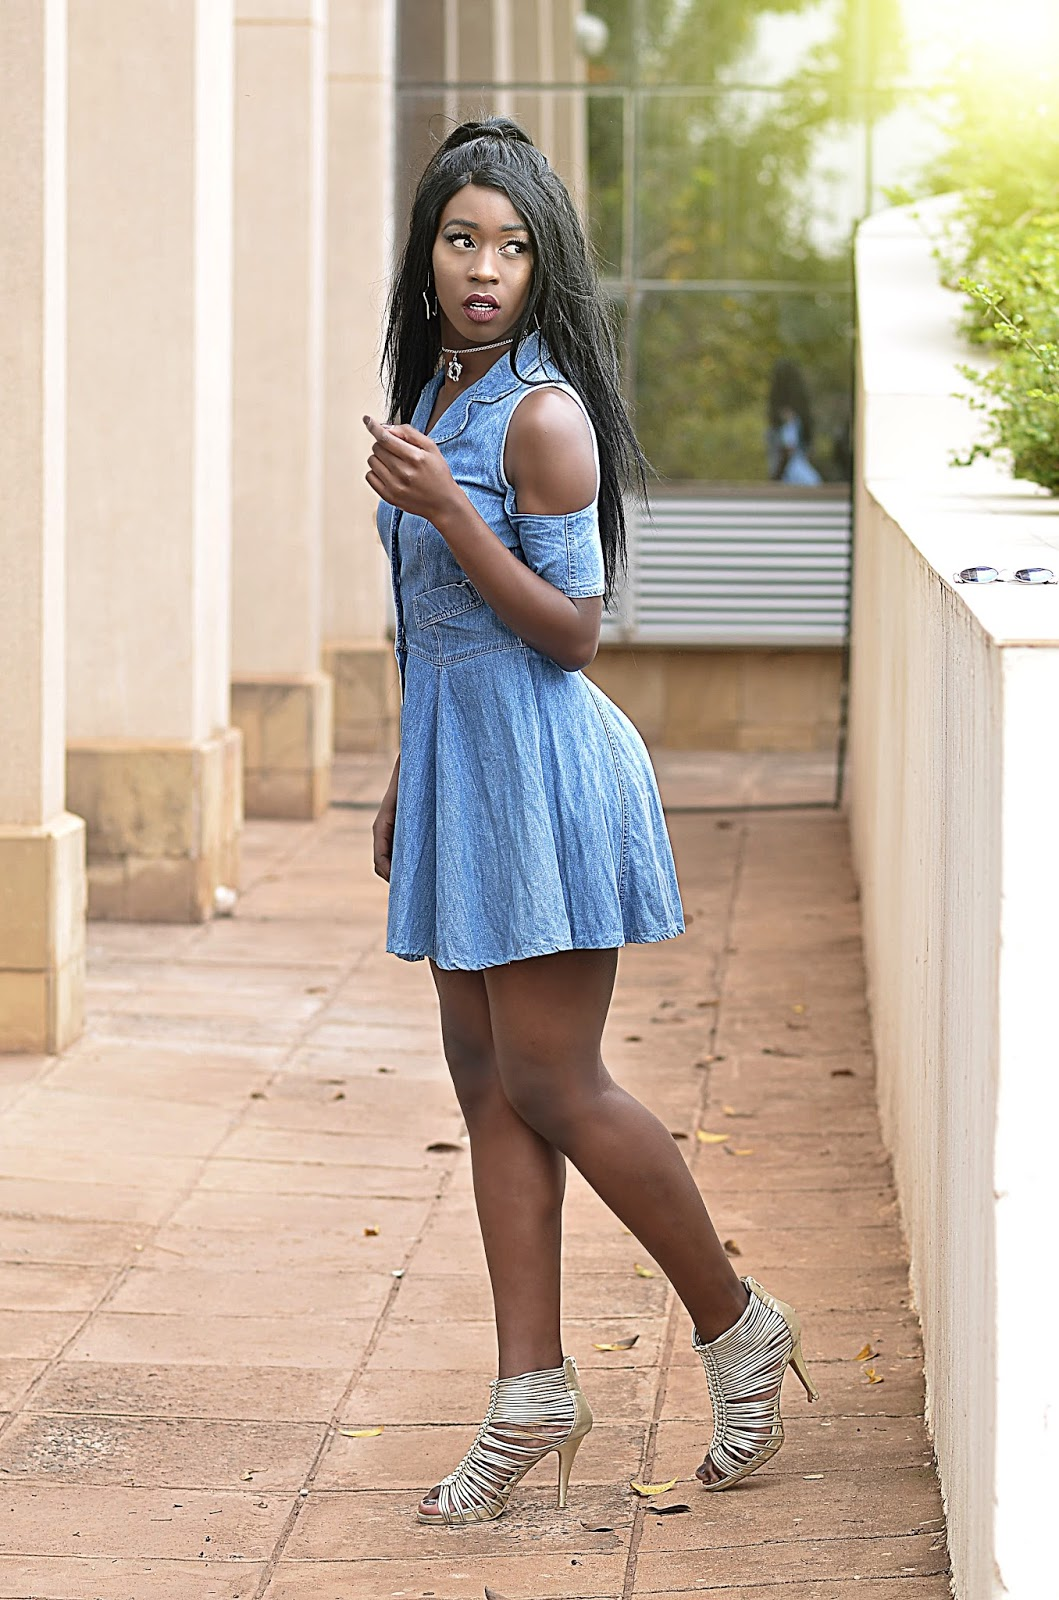 style with Ezil, cold shoulder dress, denim dress, date outfit, simple outfit, what to wear, outfit ideas, our style kenya, fashion, chic outfit, Kenyan fashion blogger, African fashion blogger